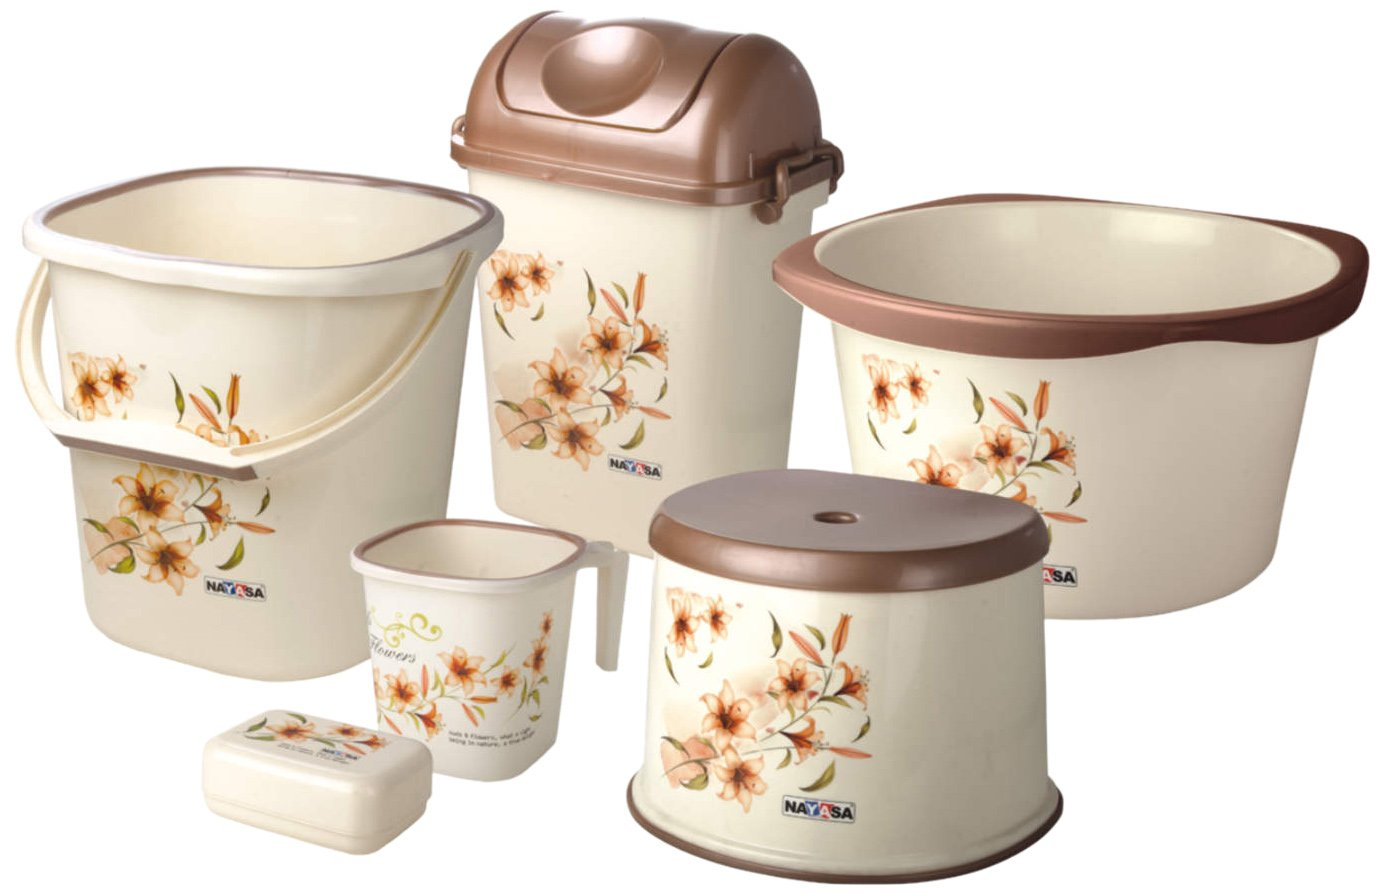 Nayasa Square 6 Piece Bathroom Set Deluxe (Brown): Amazon.in: Home ...